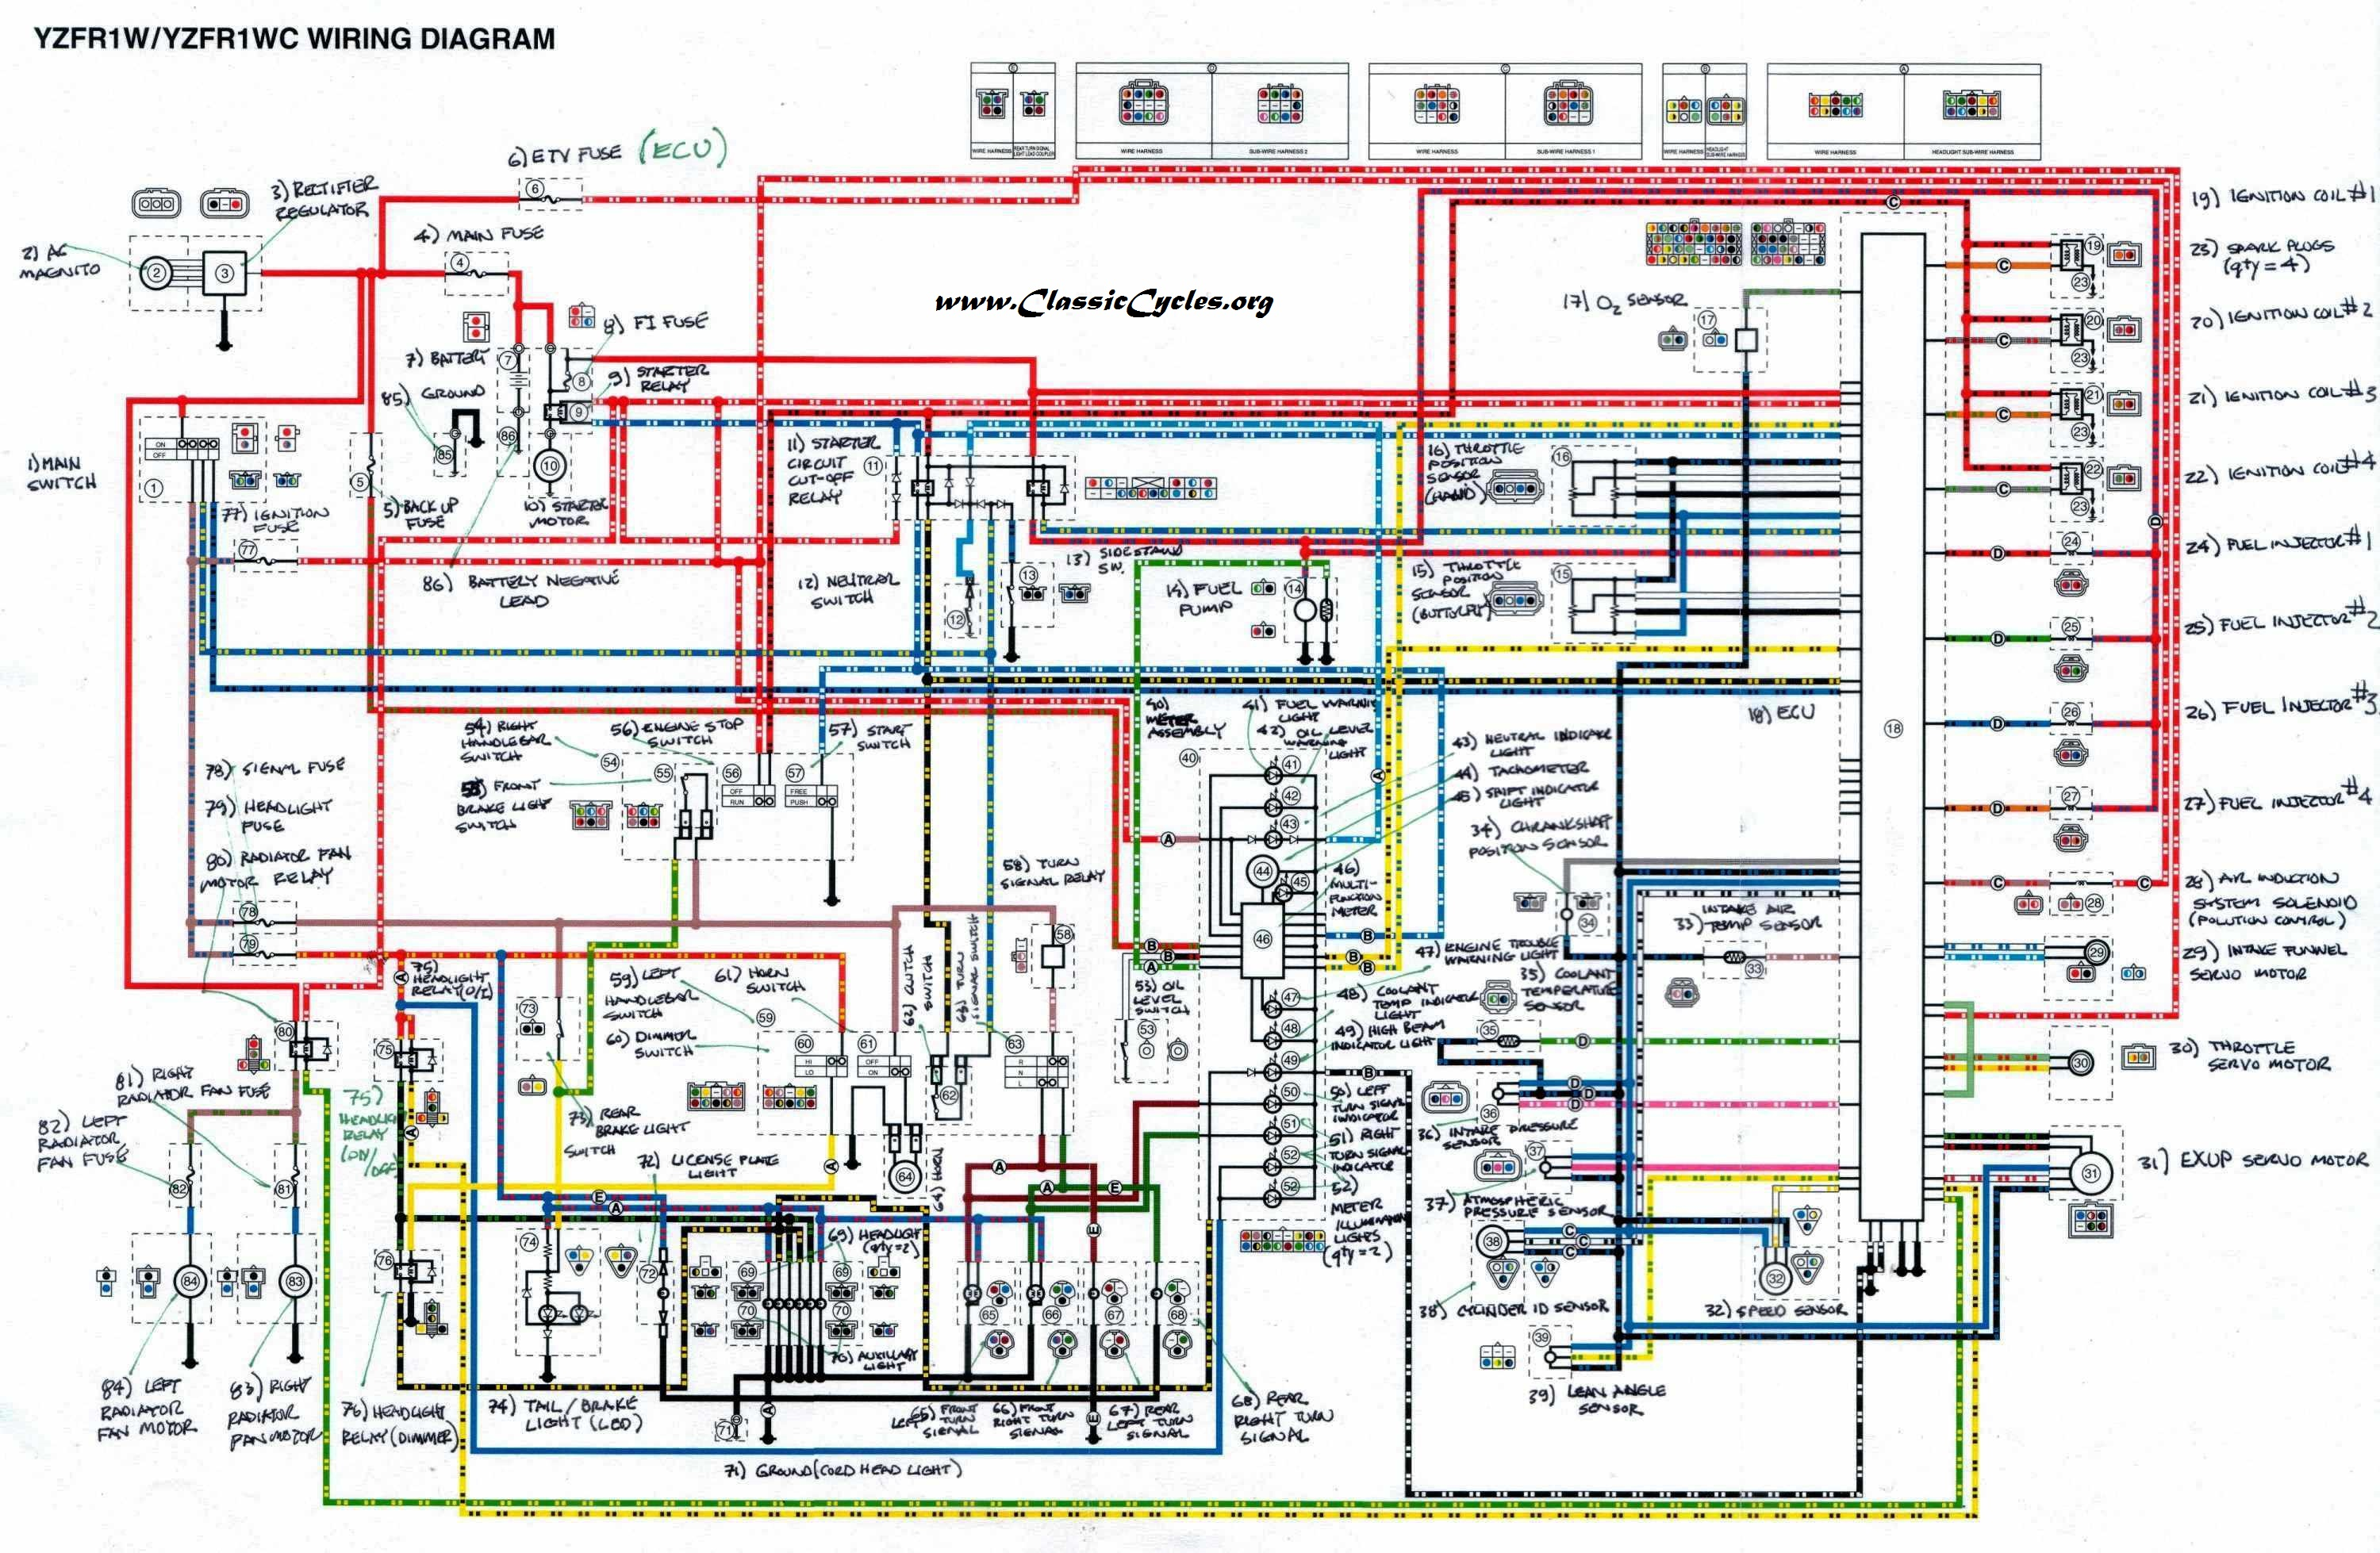 yamaha gx 80 1976 moto yamaha outboard motor wiring diagrams the wiring diagram yamaha ct175 wiring diagram at nearapp.co